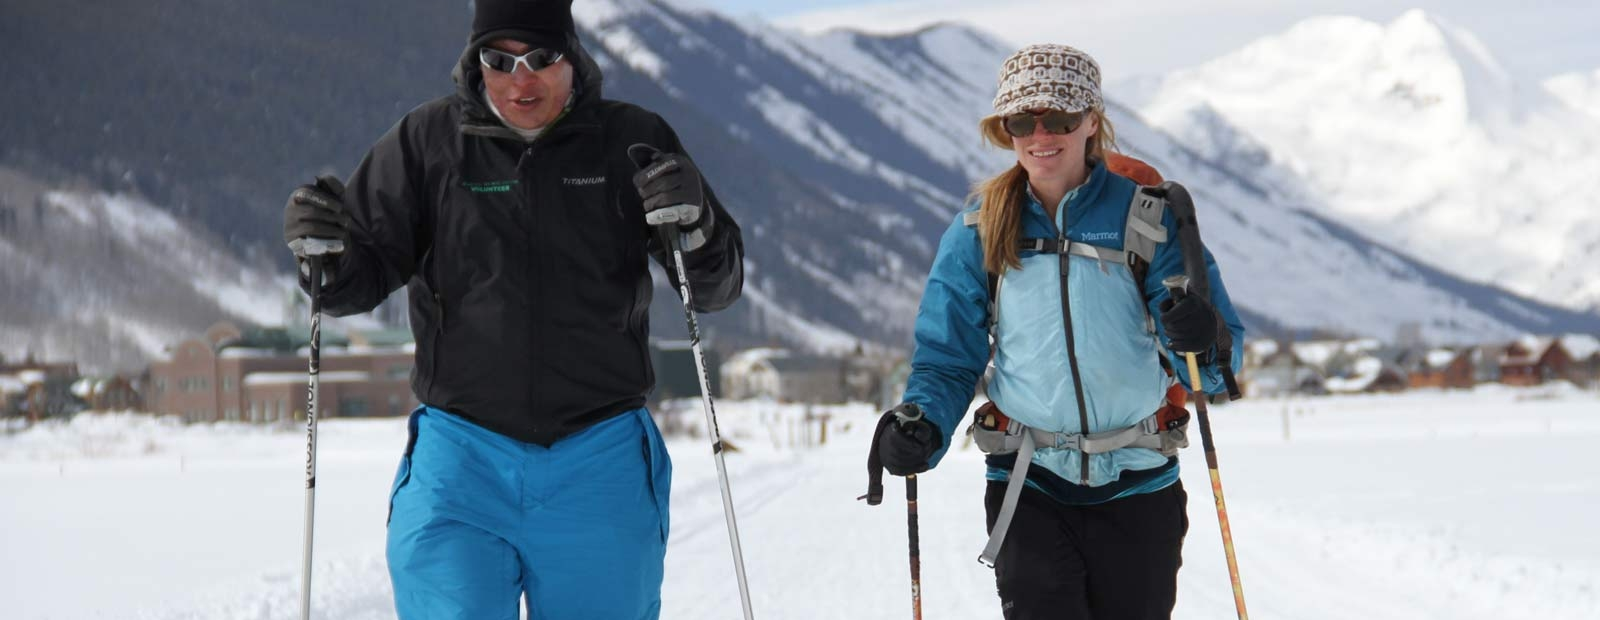 Two people nordic skiing